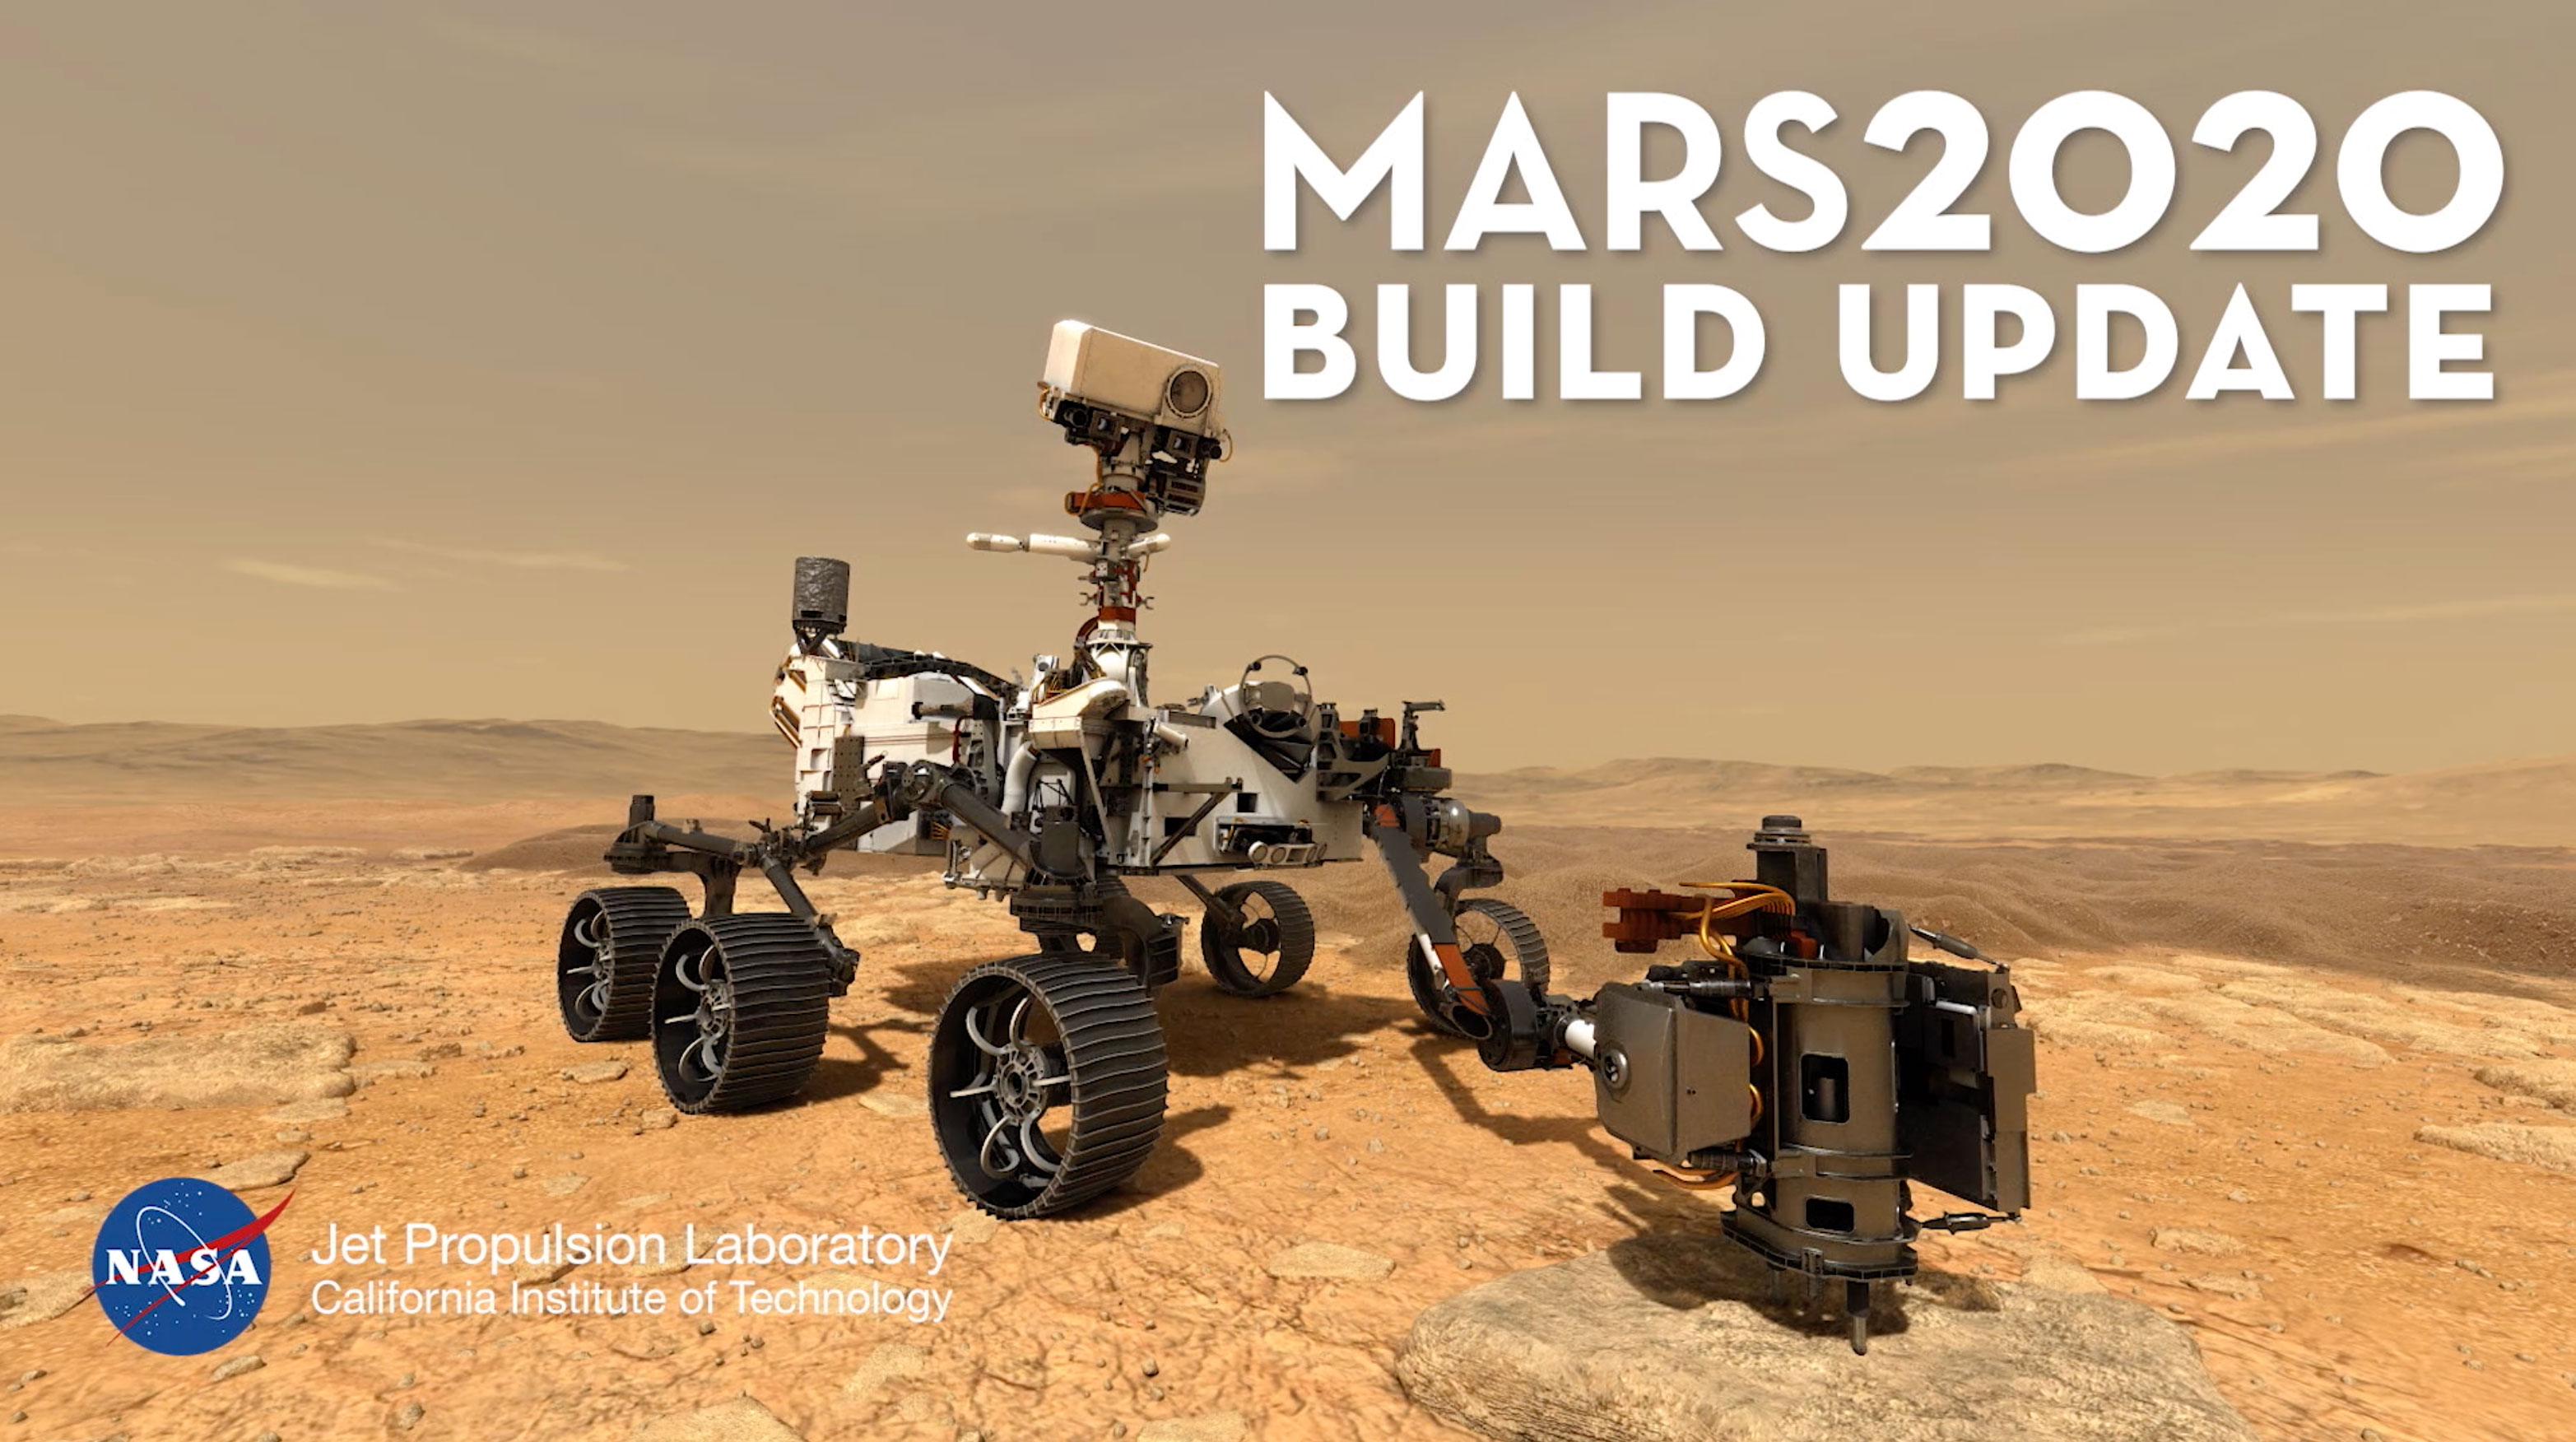 mars rover 2020 esa - photo #18